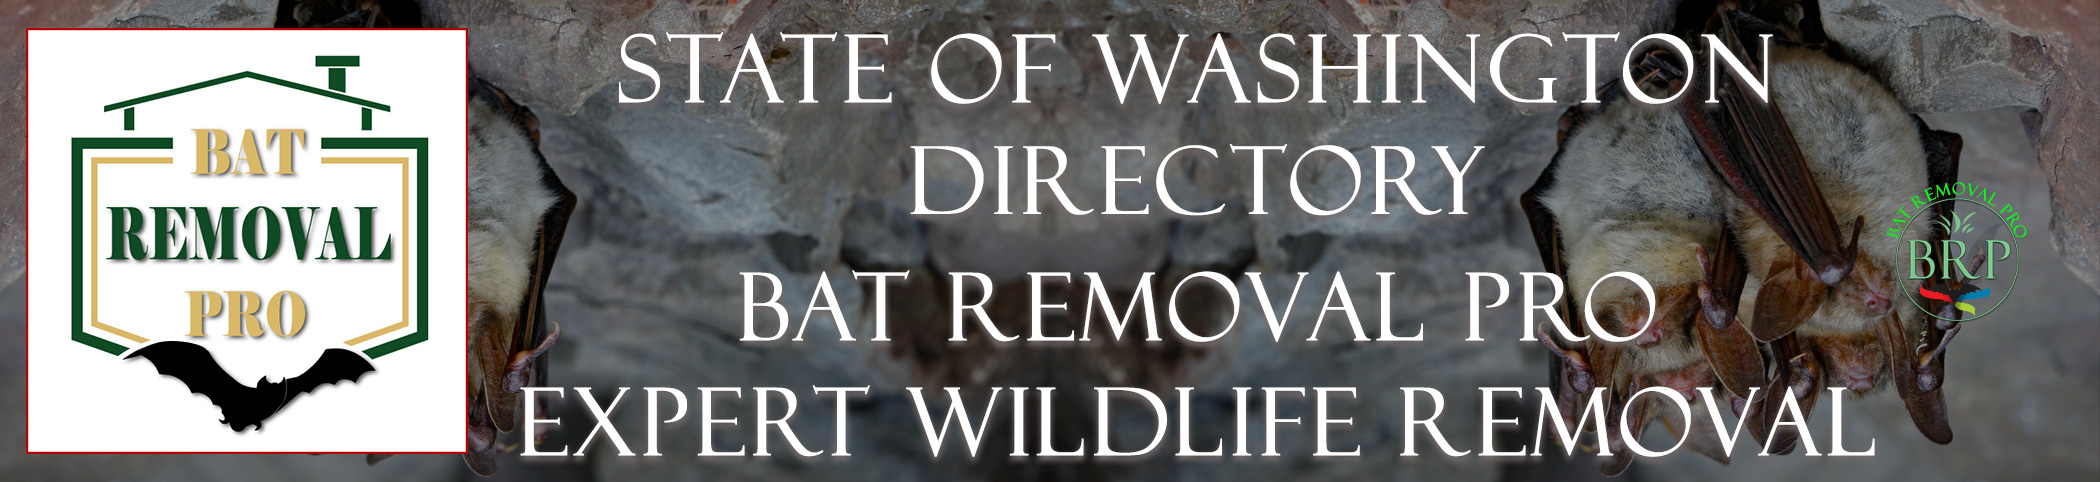 WASHINGTON-bat-removal-at-bat-removal-pro-header-image